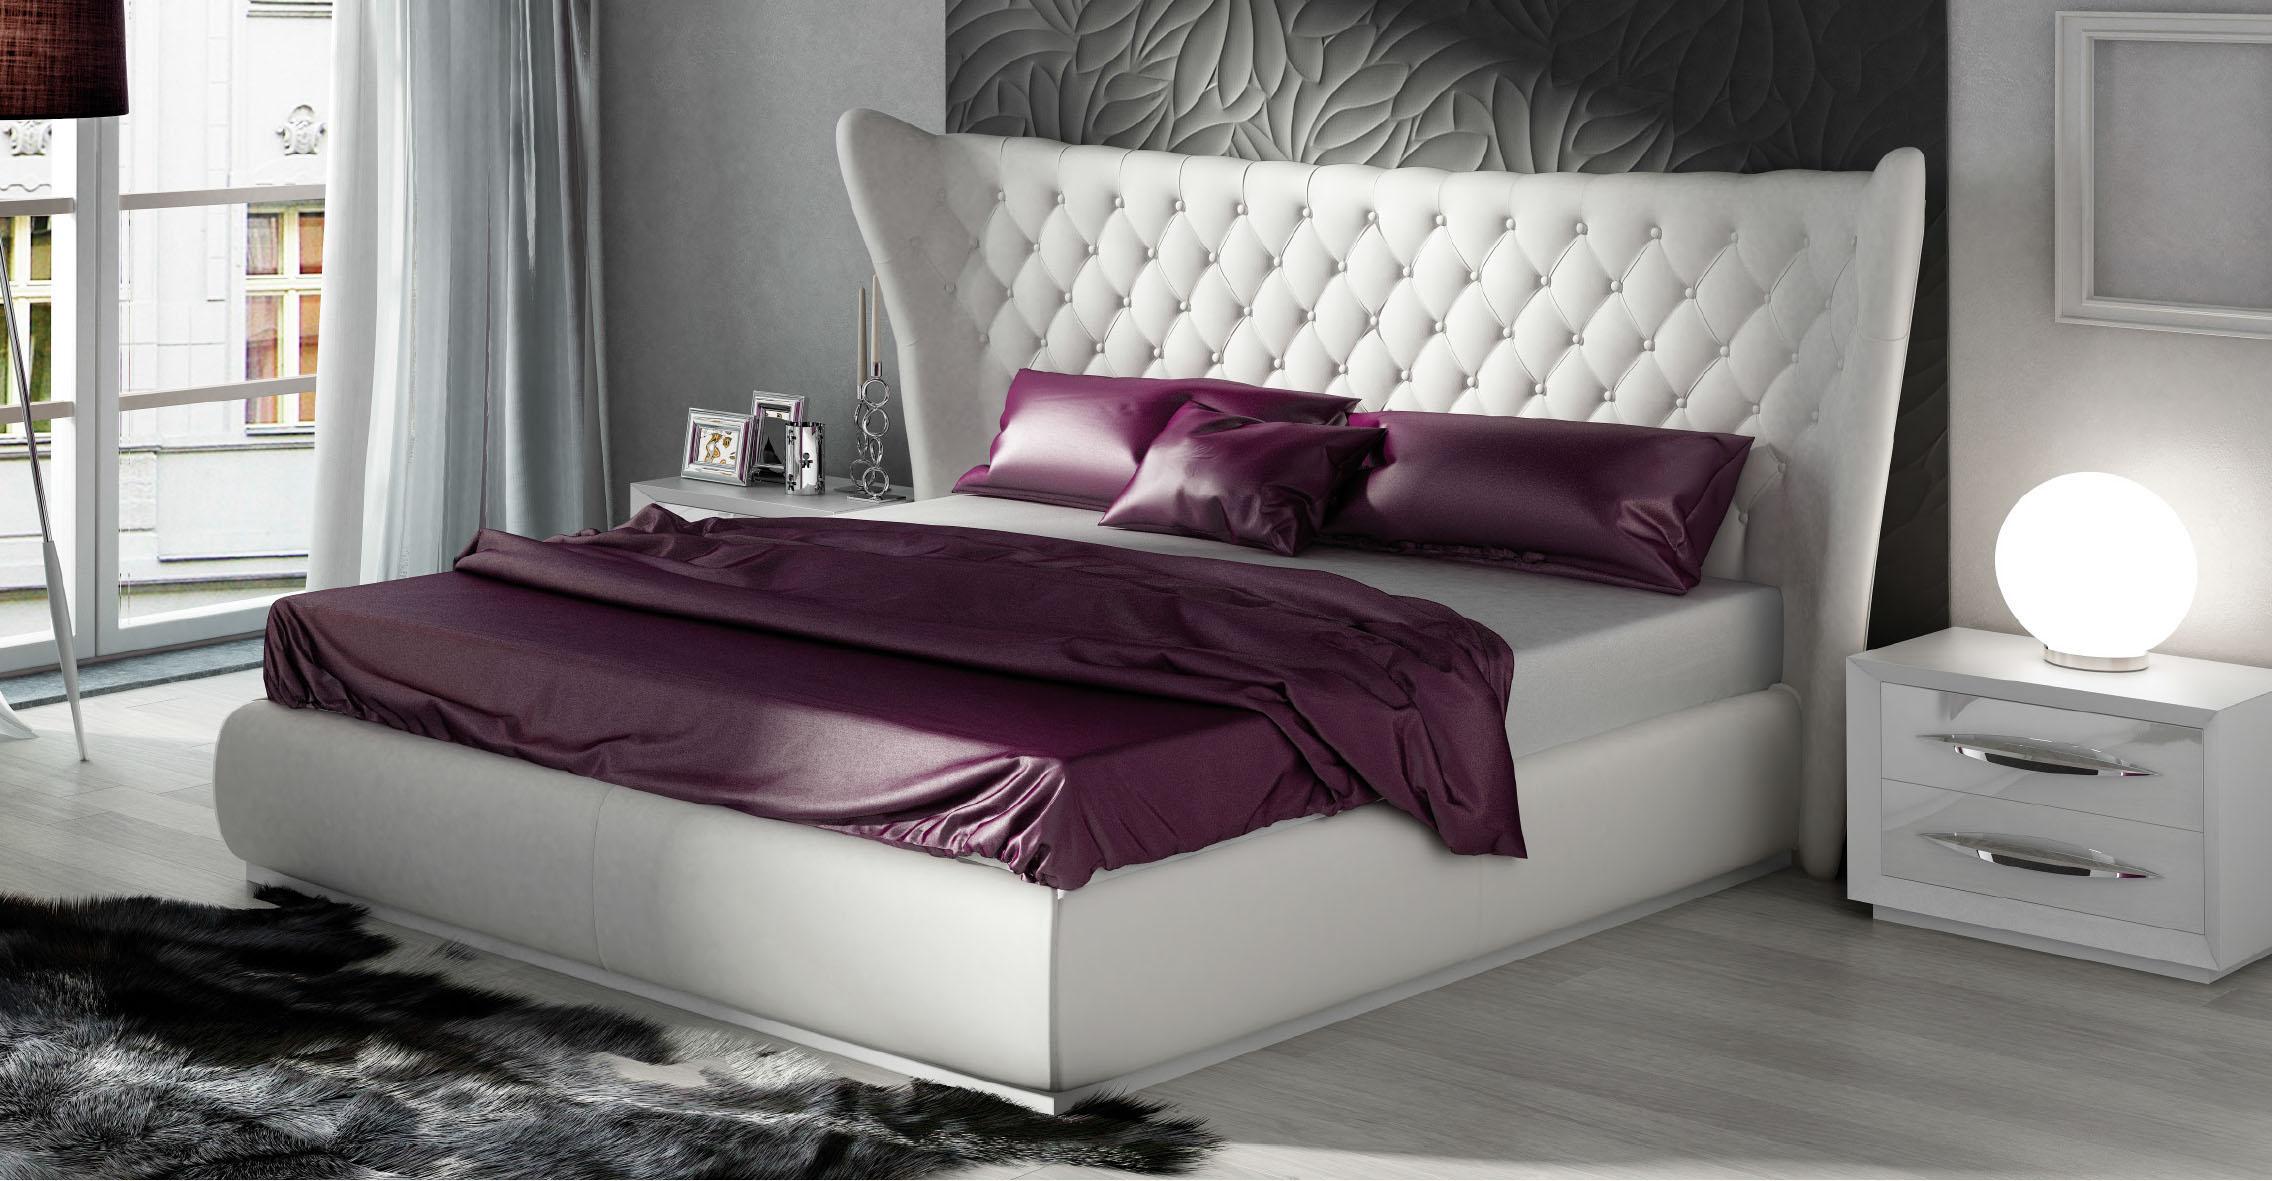 Miami bedgroup modern bedrooms bedroom furniture - Contemporary king bedroom furniture ...